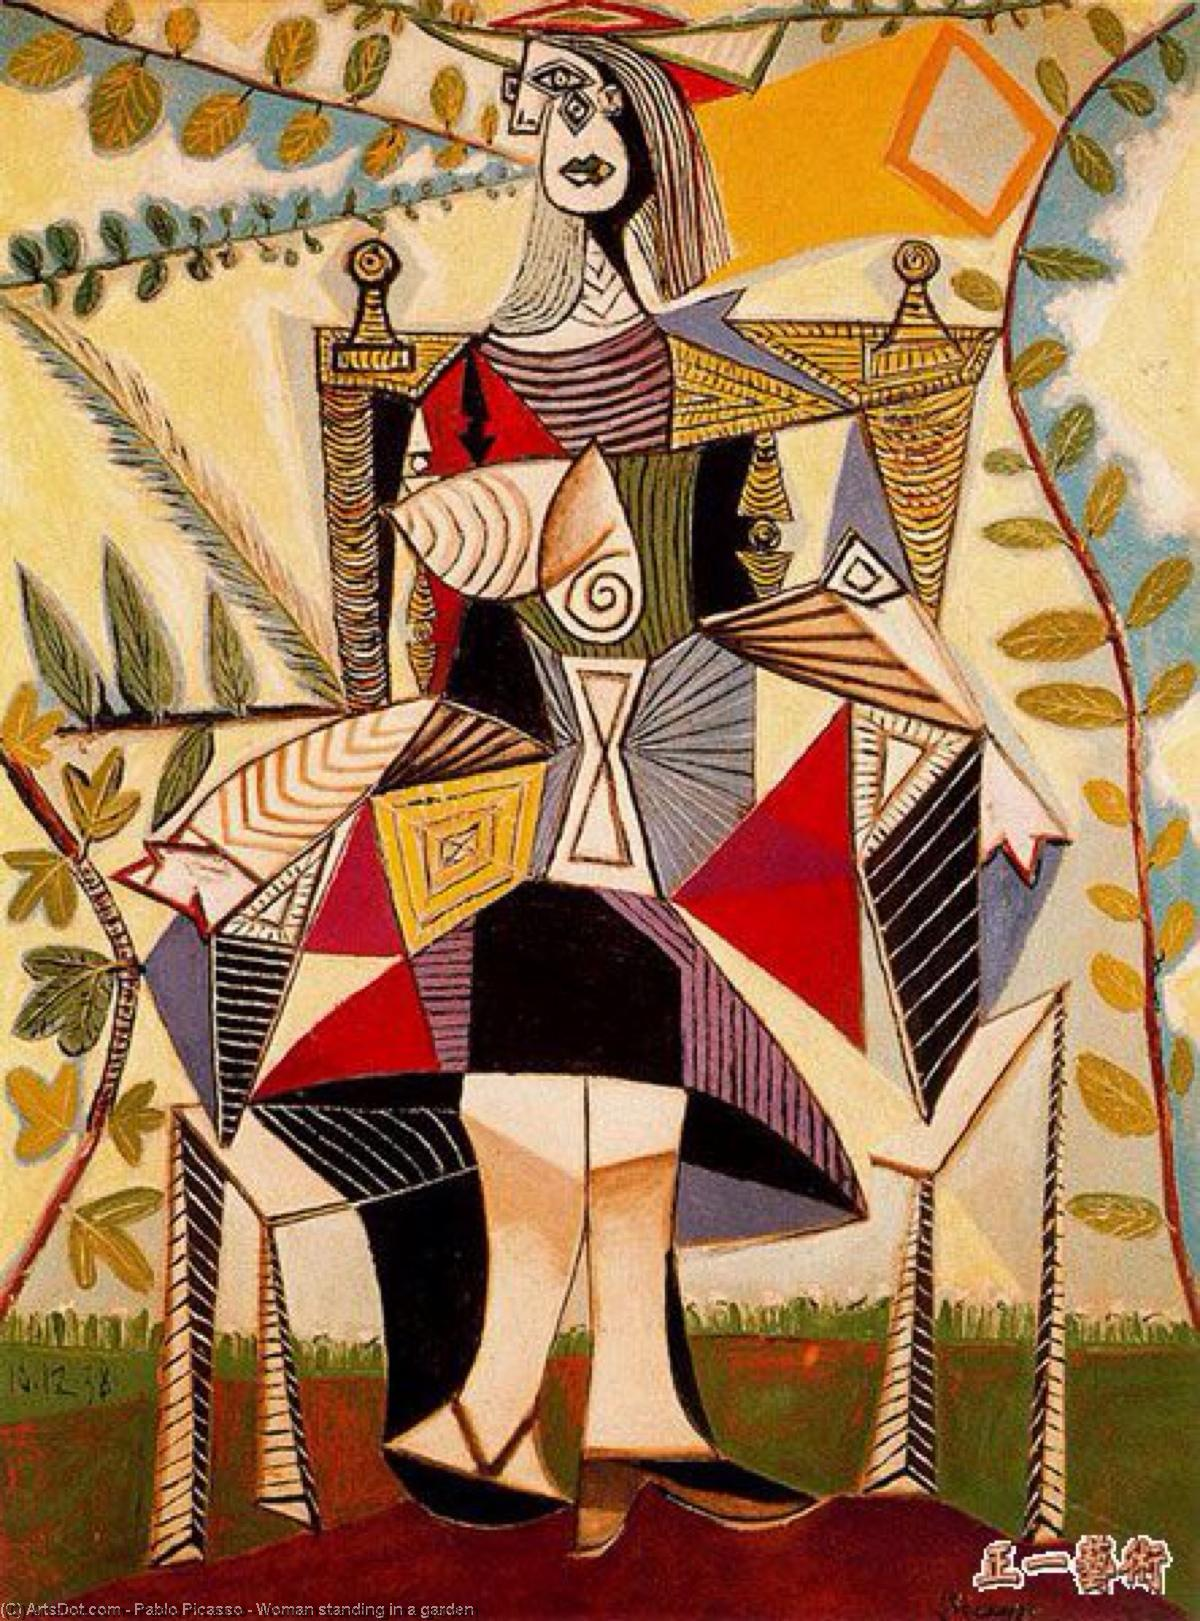 Wikioo.org - The Encyclopedia of Fine Arts - Painting, Artwork by Pablo Picasso - Woman standing in a garden